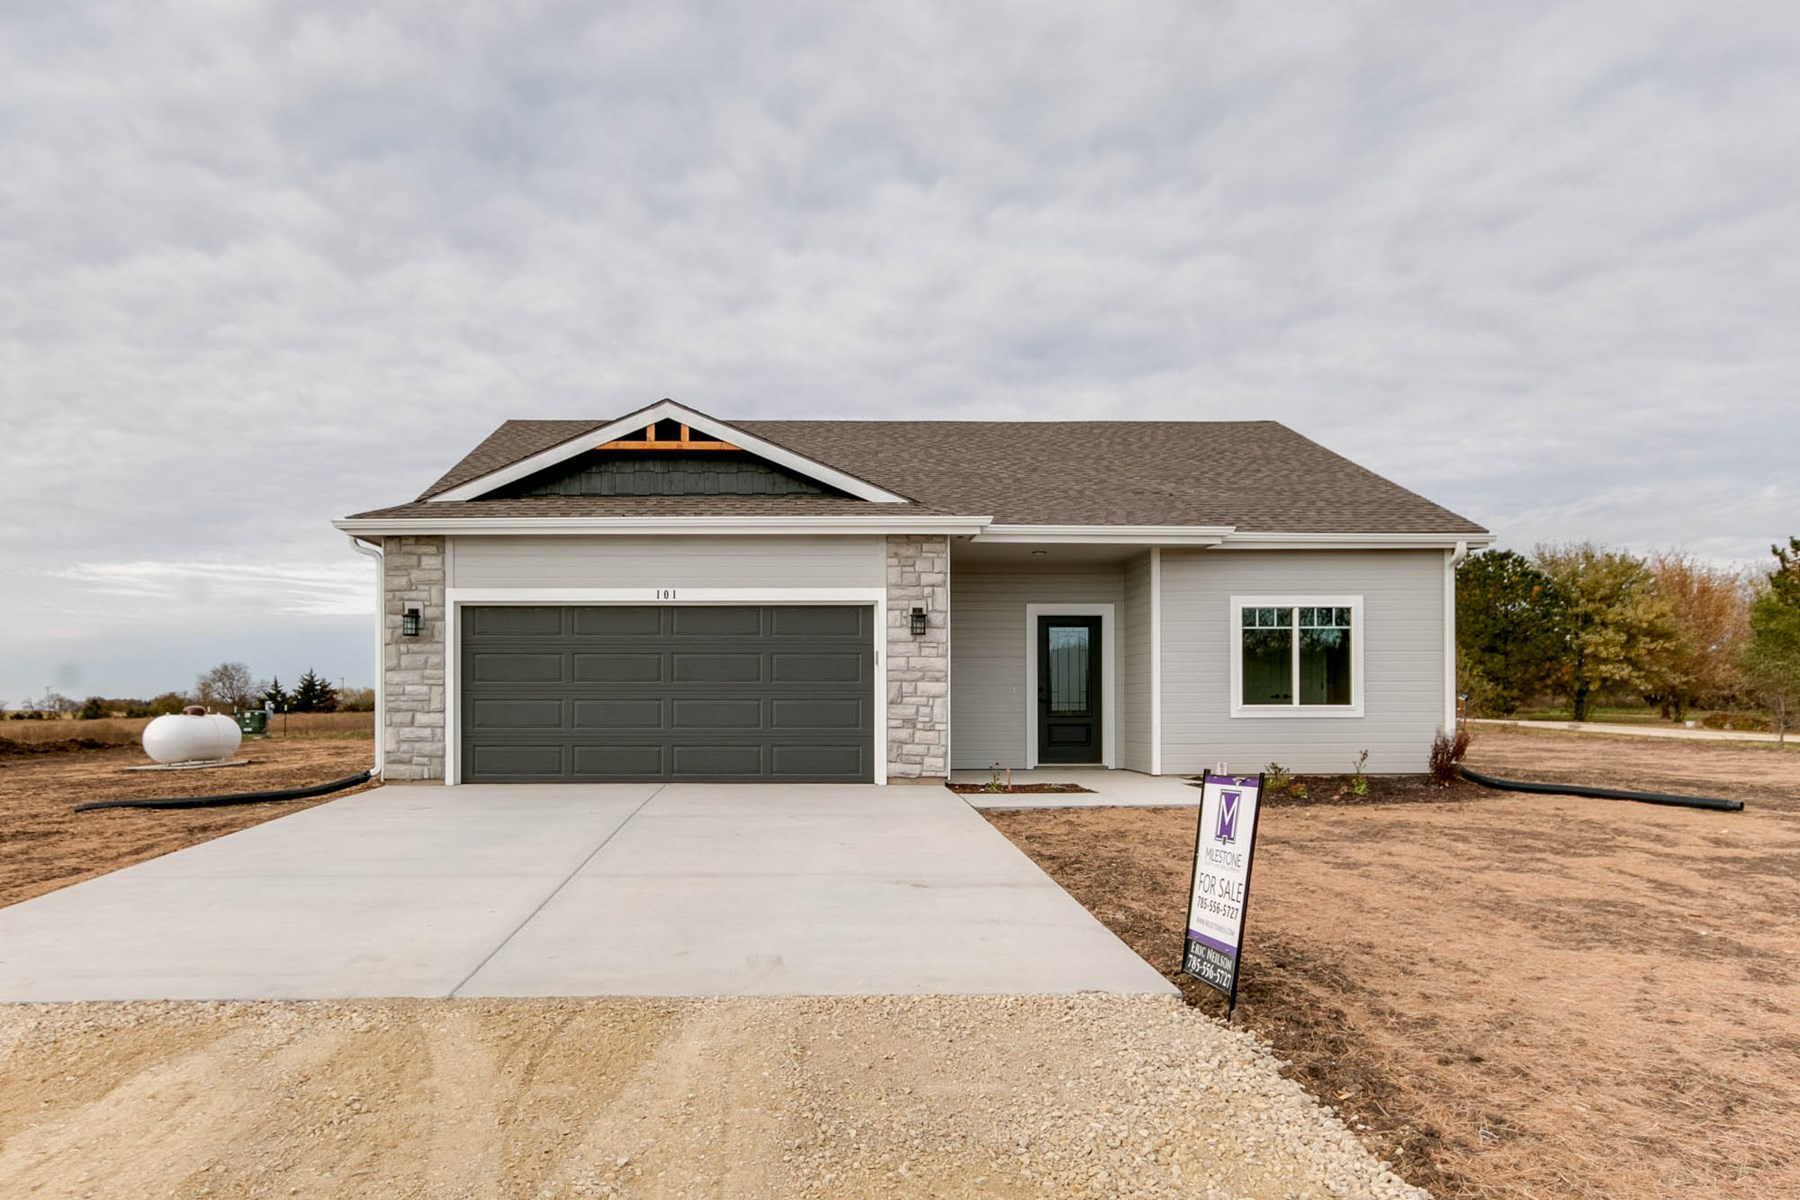 Olsburg Kansas New Construction Home For Sale - No Specials